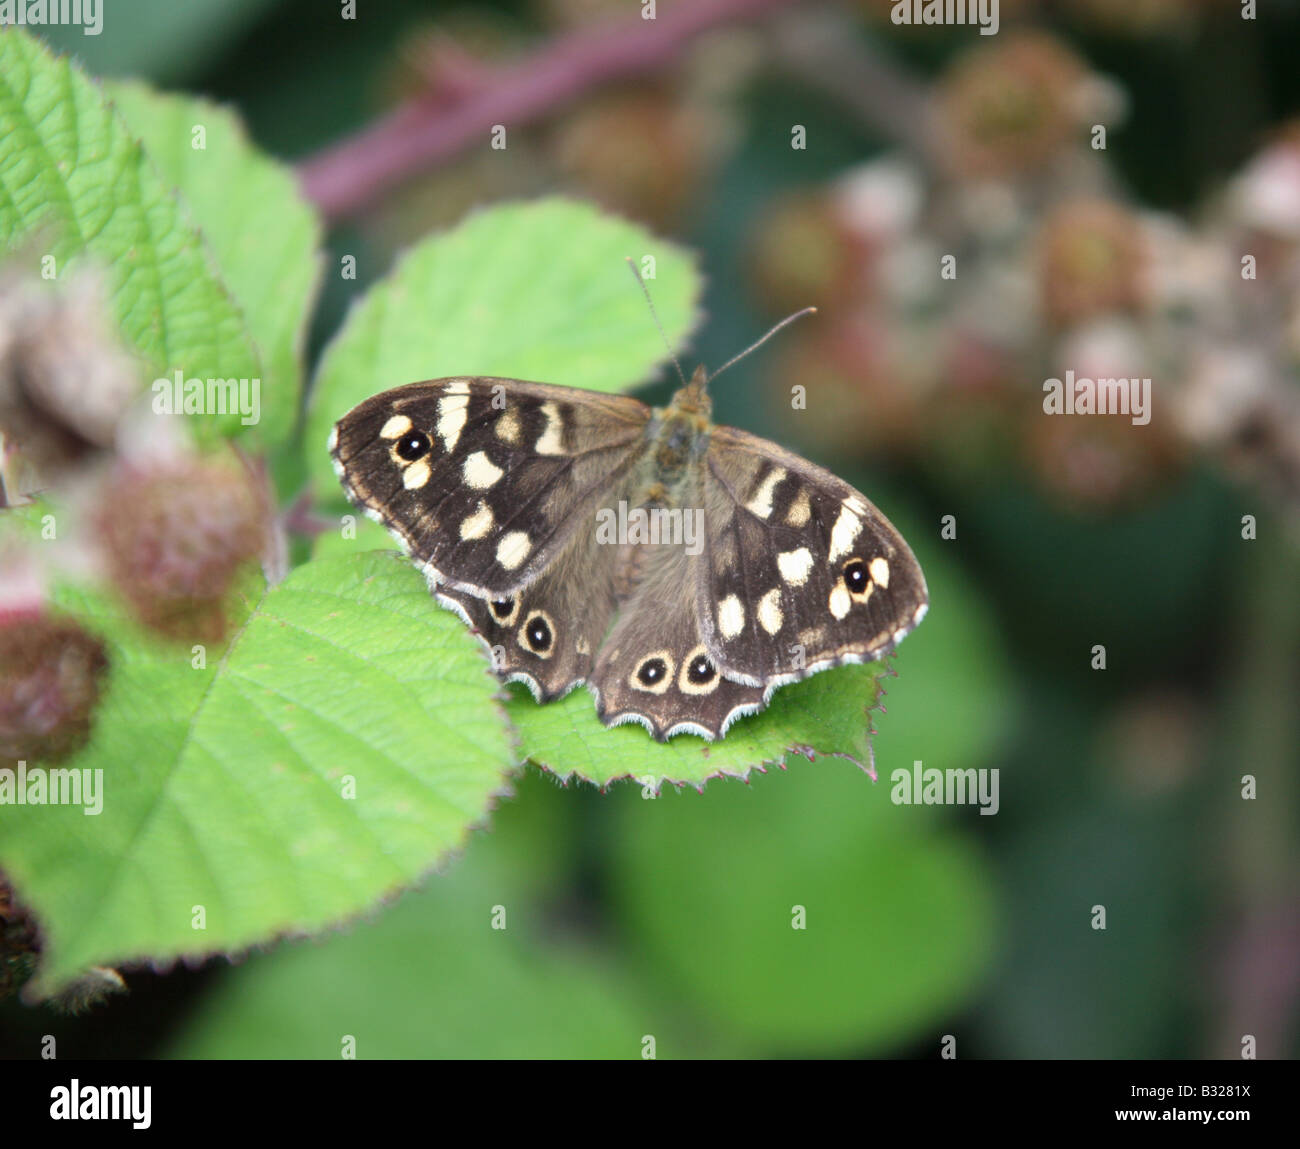 A Speckled Wood (Pararge aegeria) butterfly - Stock Image